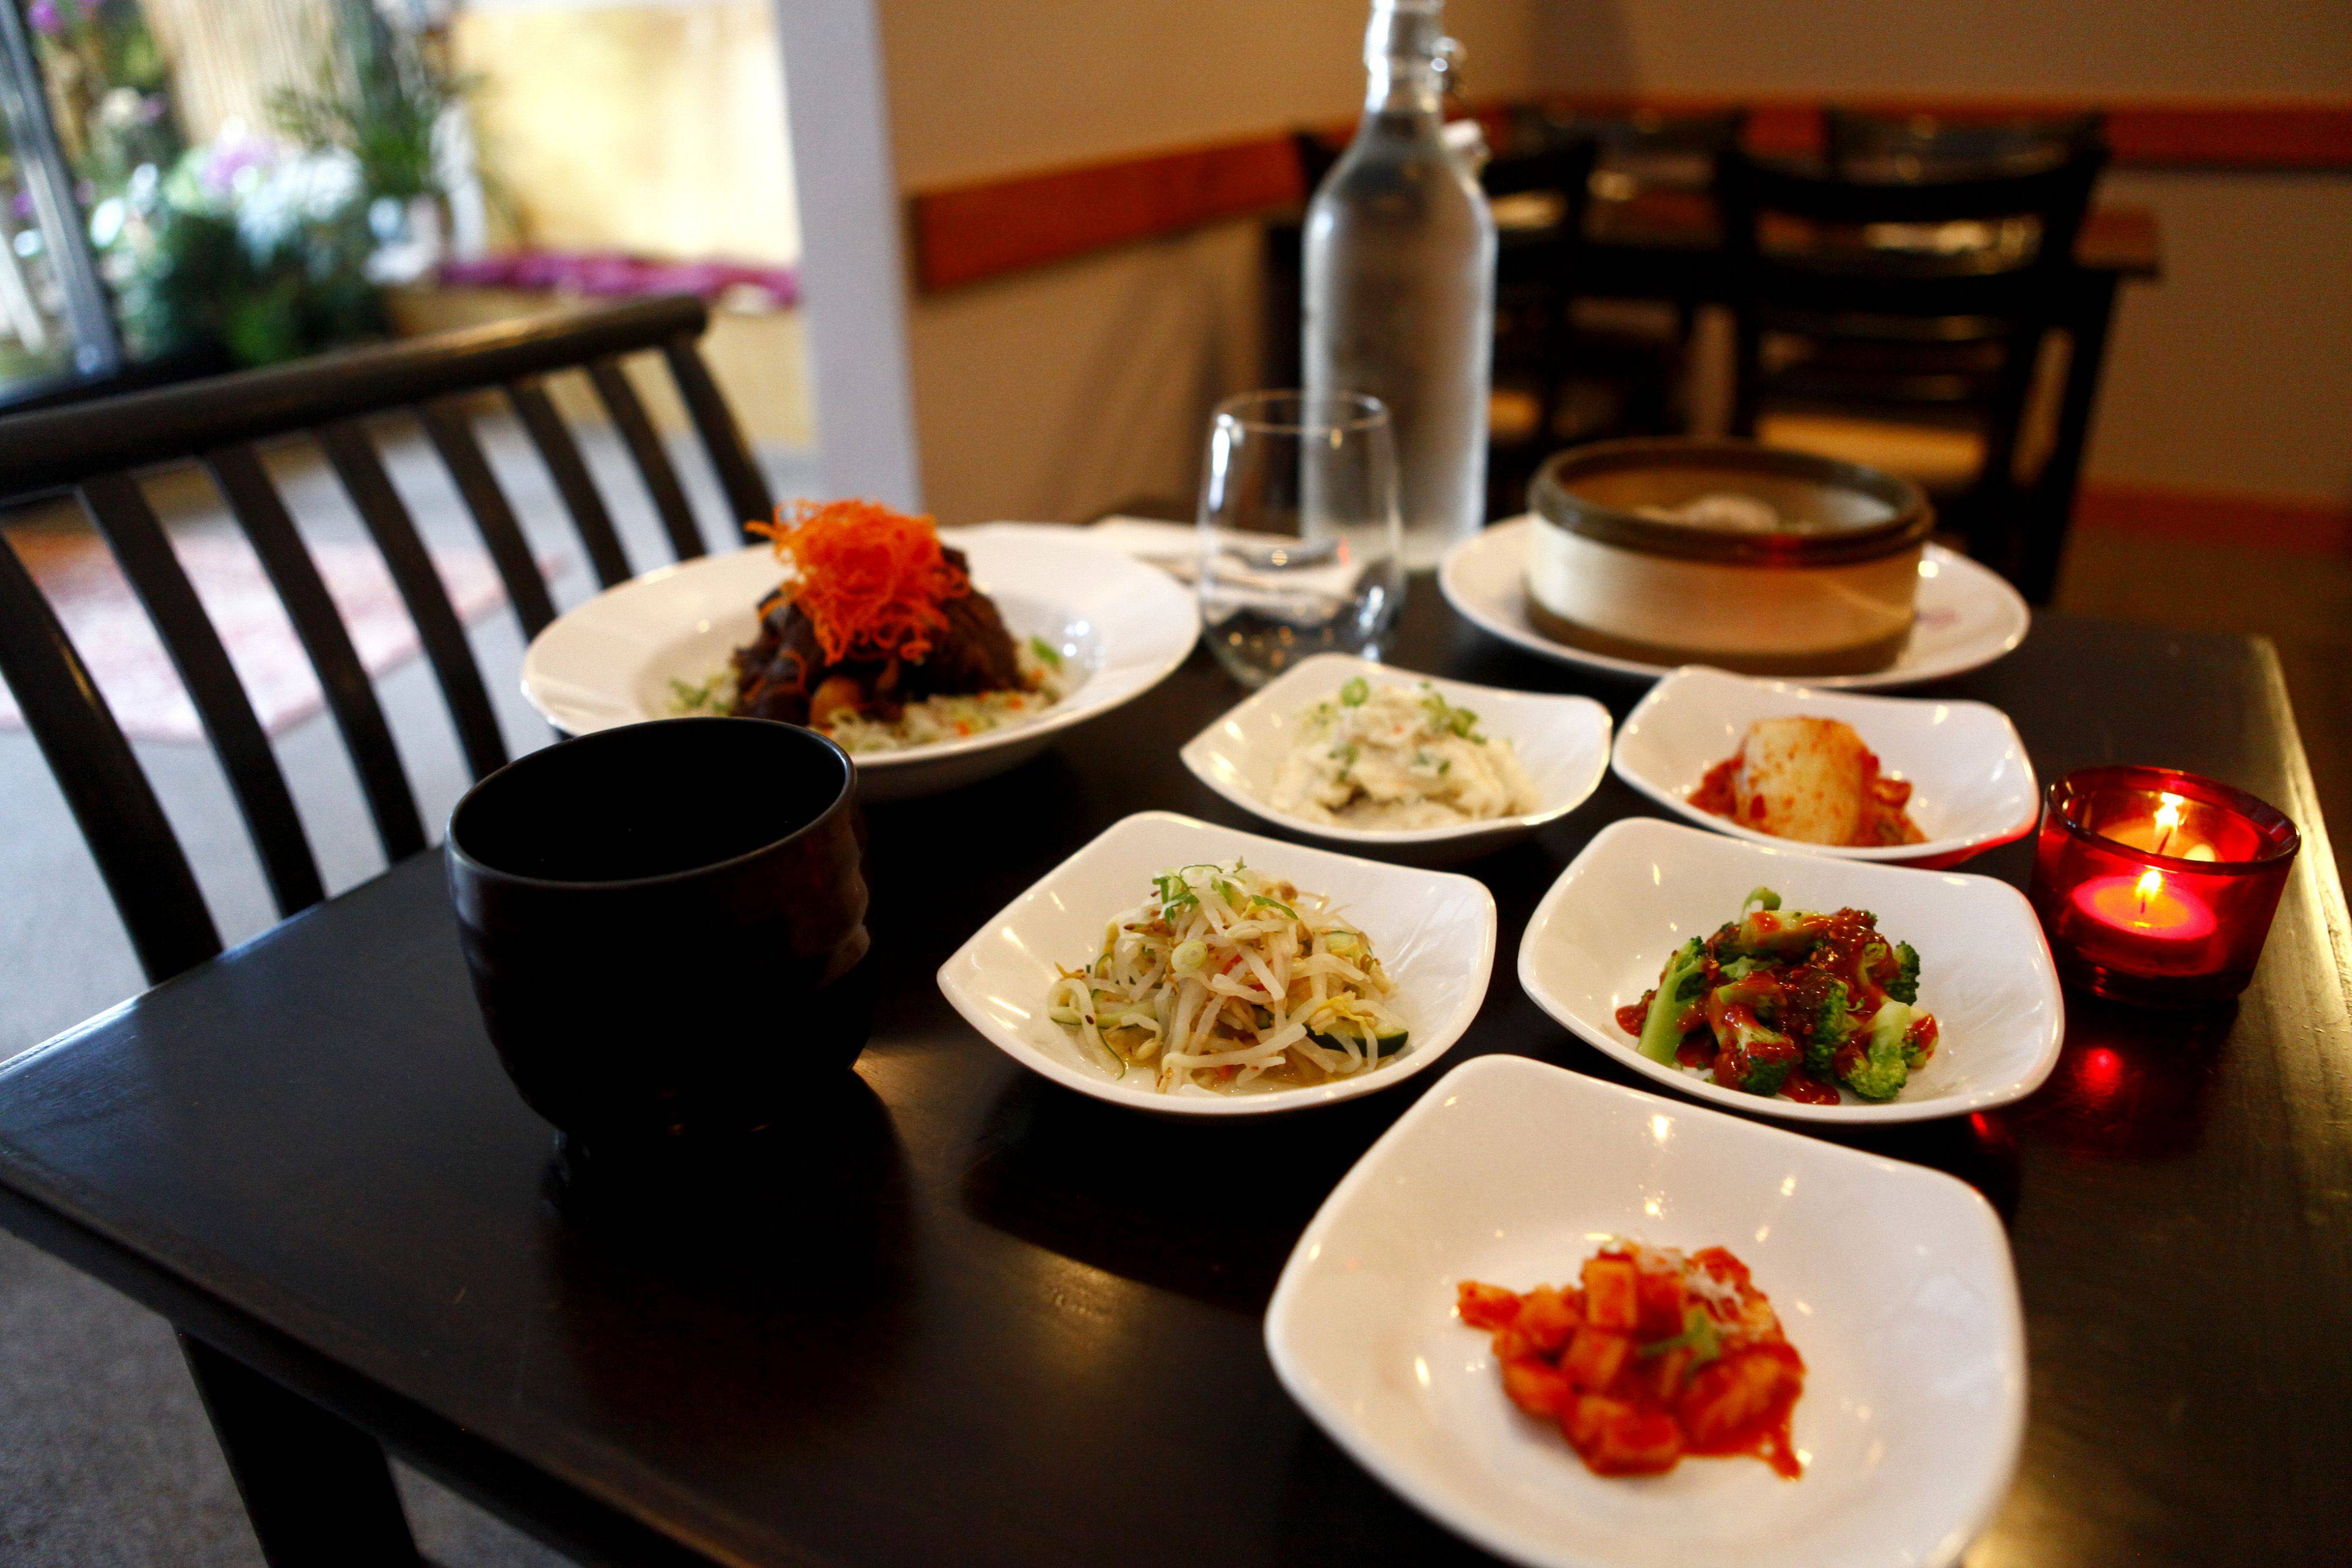 Meals at Ttowa in Arlington Heights come with a piquant potato salad and tantalizing pickled vegetables.